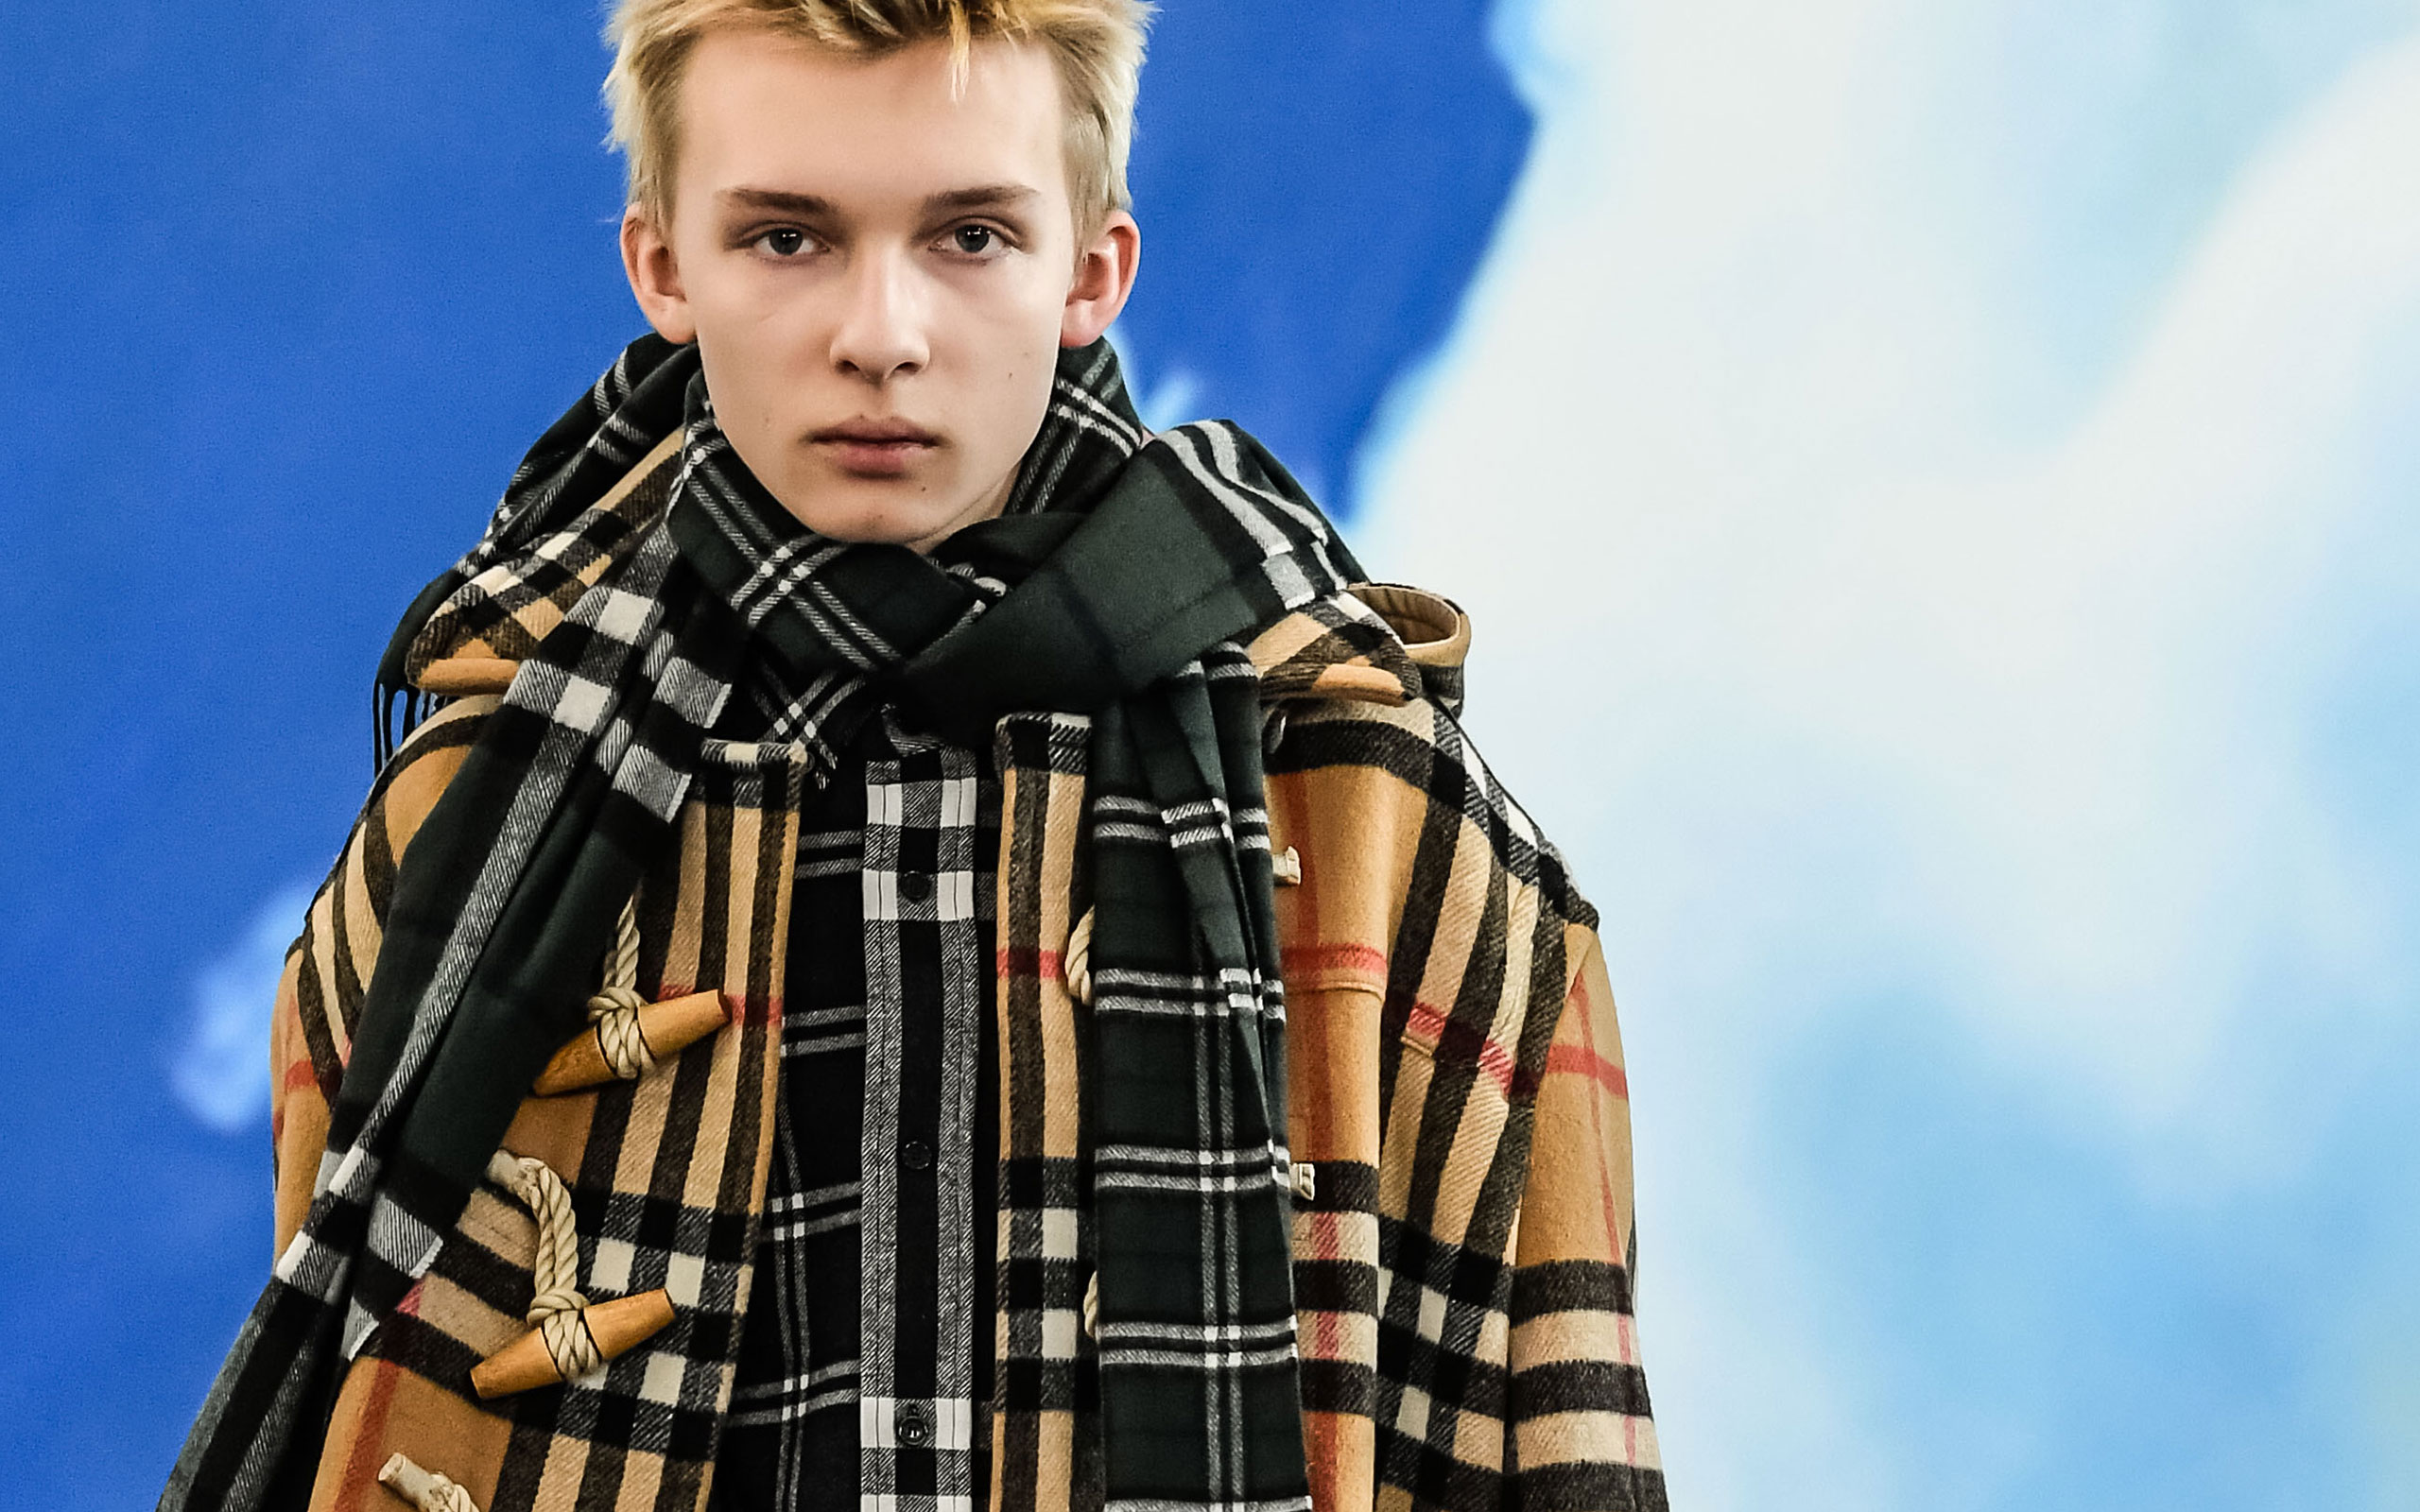 Gosha Rubchinskiy Reveals 2nd Collaboration With Burberry